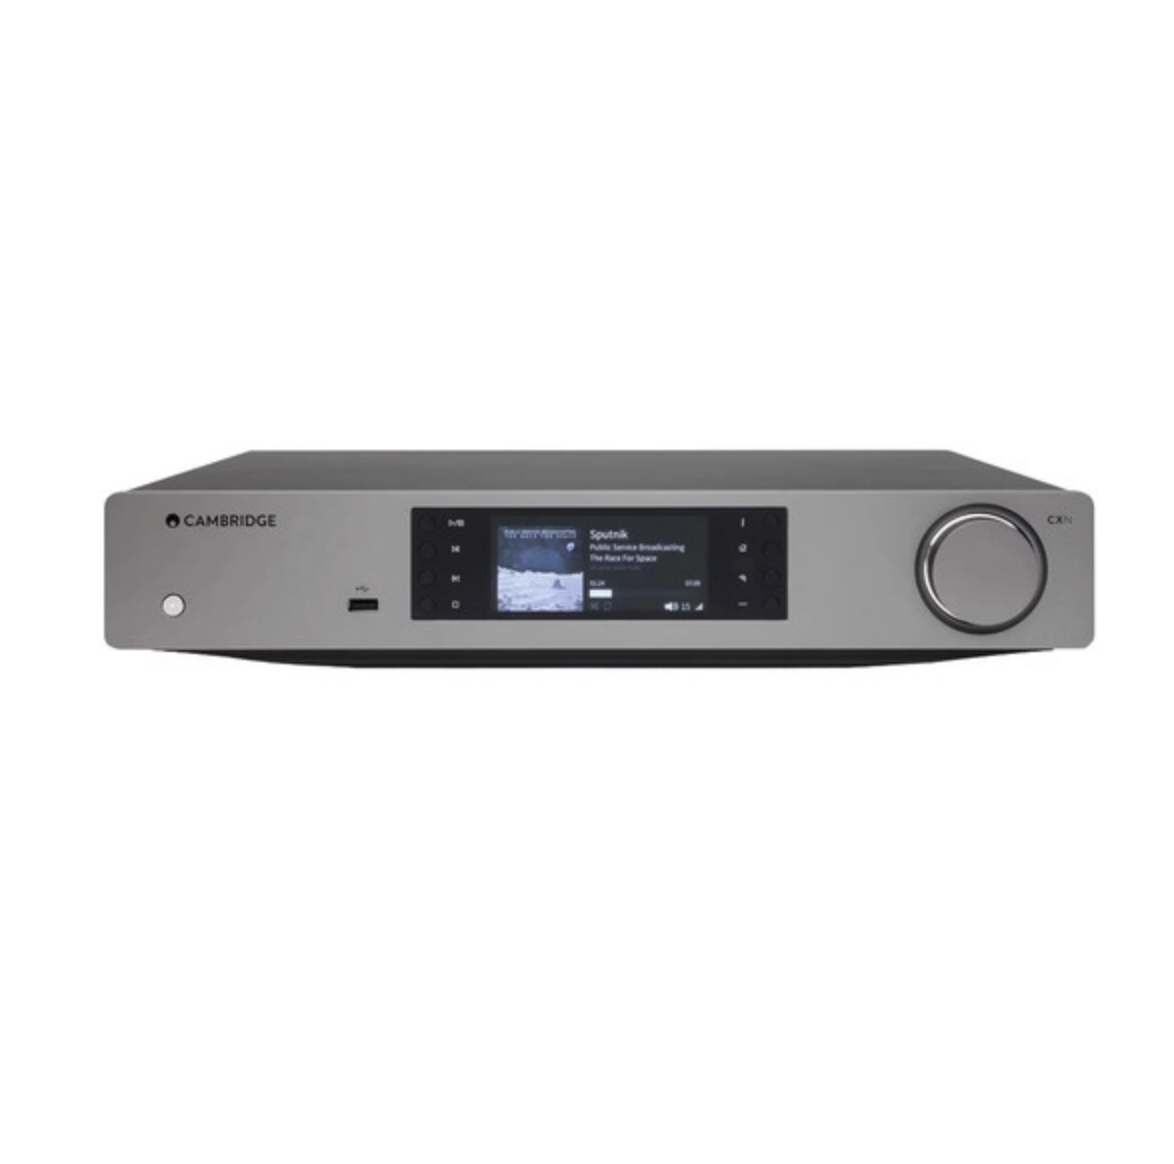 Cambridge Audio Cxn V2 Series 2 Audio Player (Luna Gray)